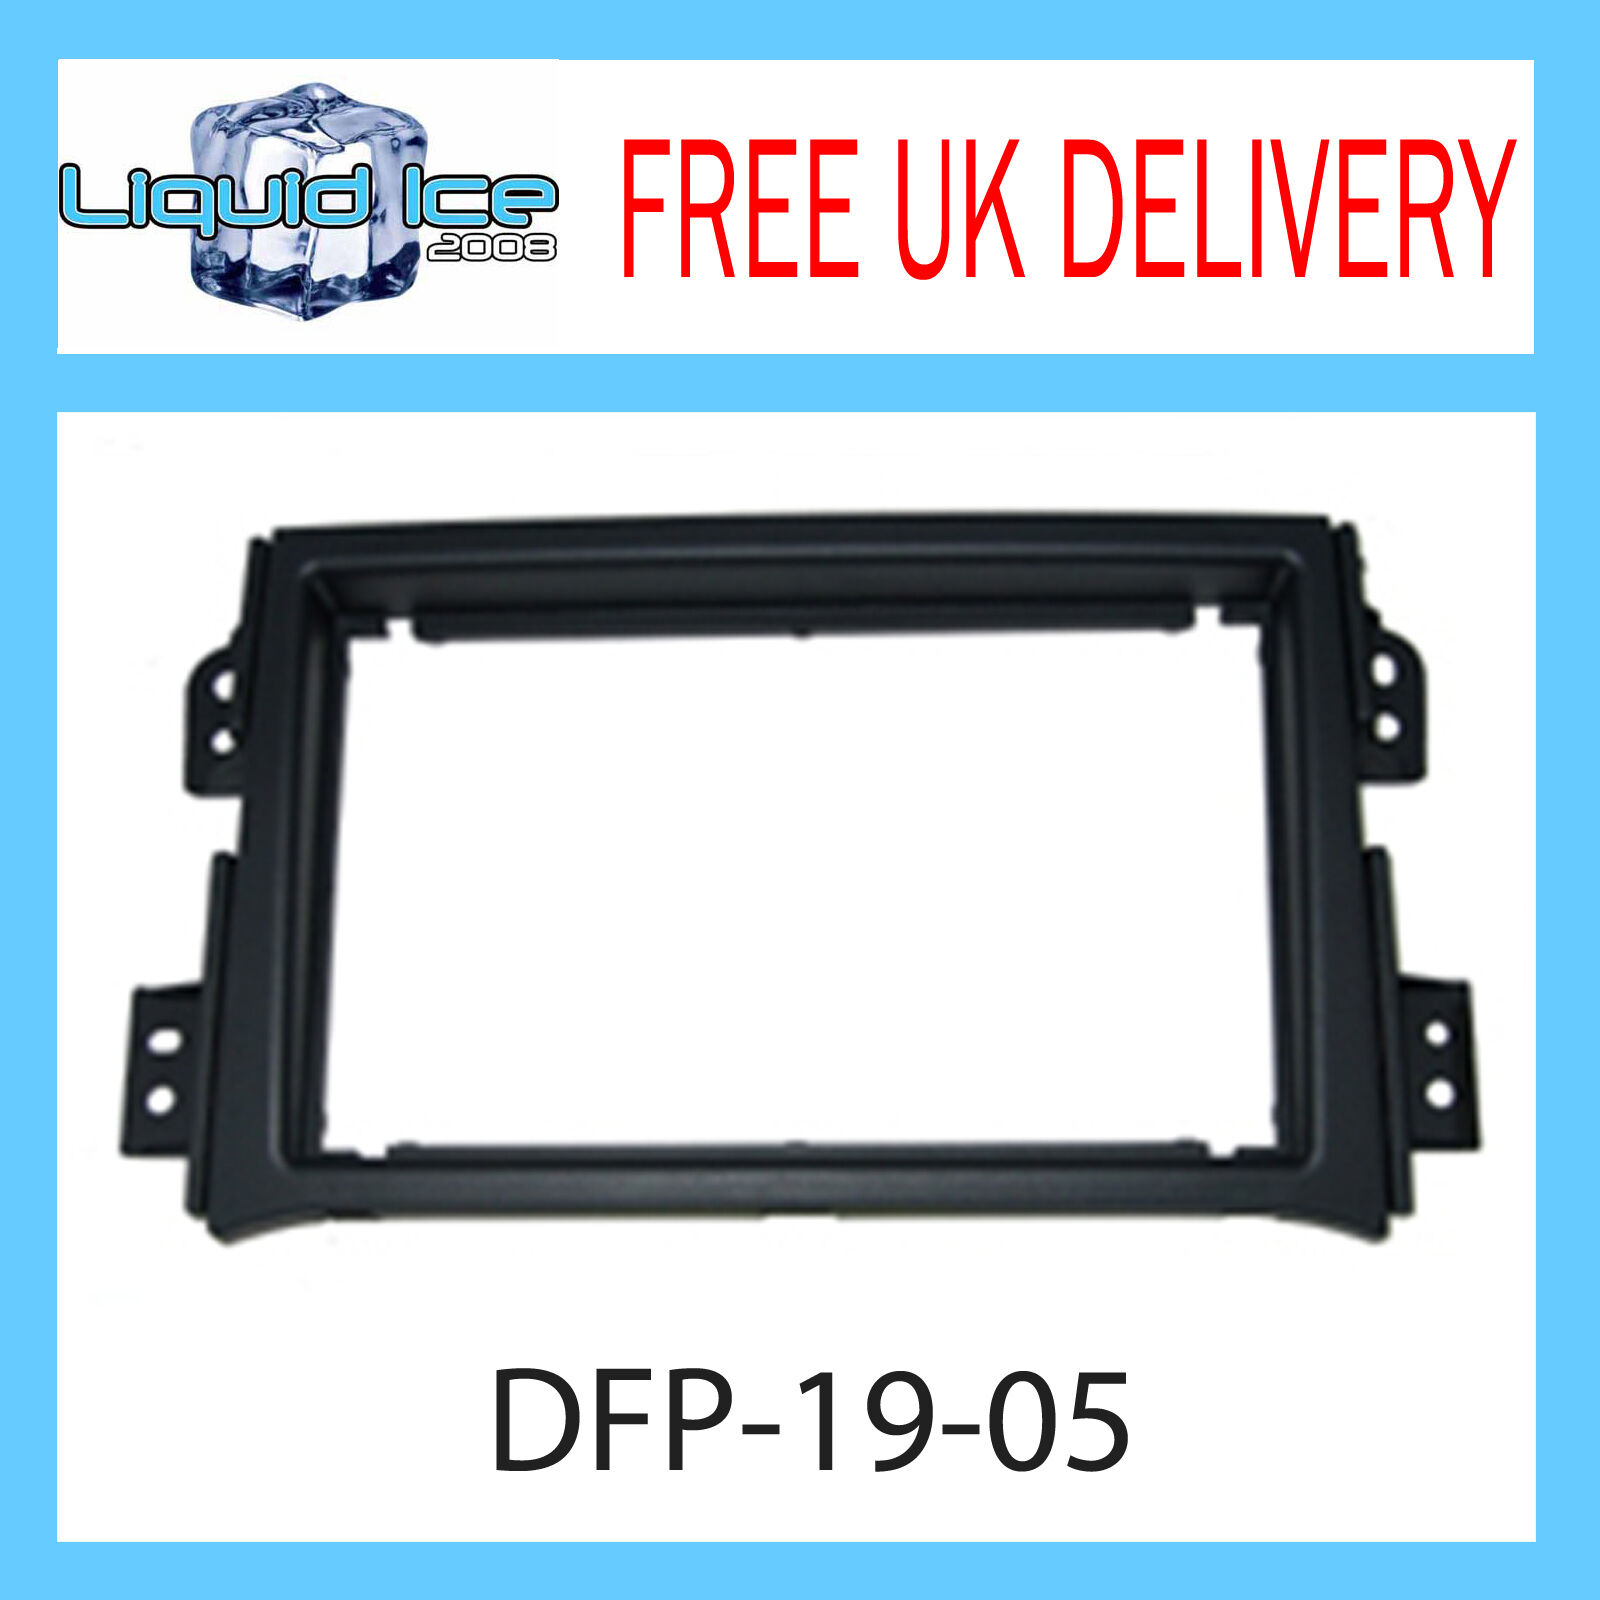 Autoleads FP-19-05 Vauxhall Agila 08/> Car Stereo Single Din Facia Fascia Panel